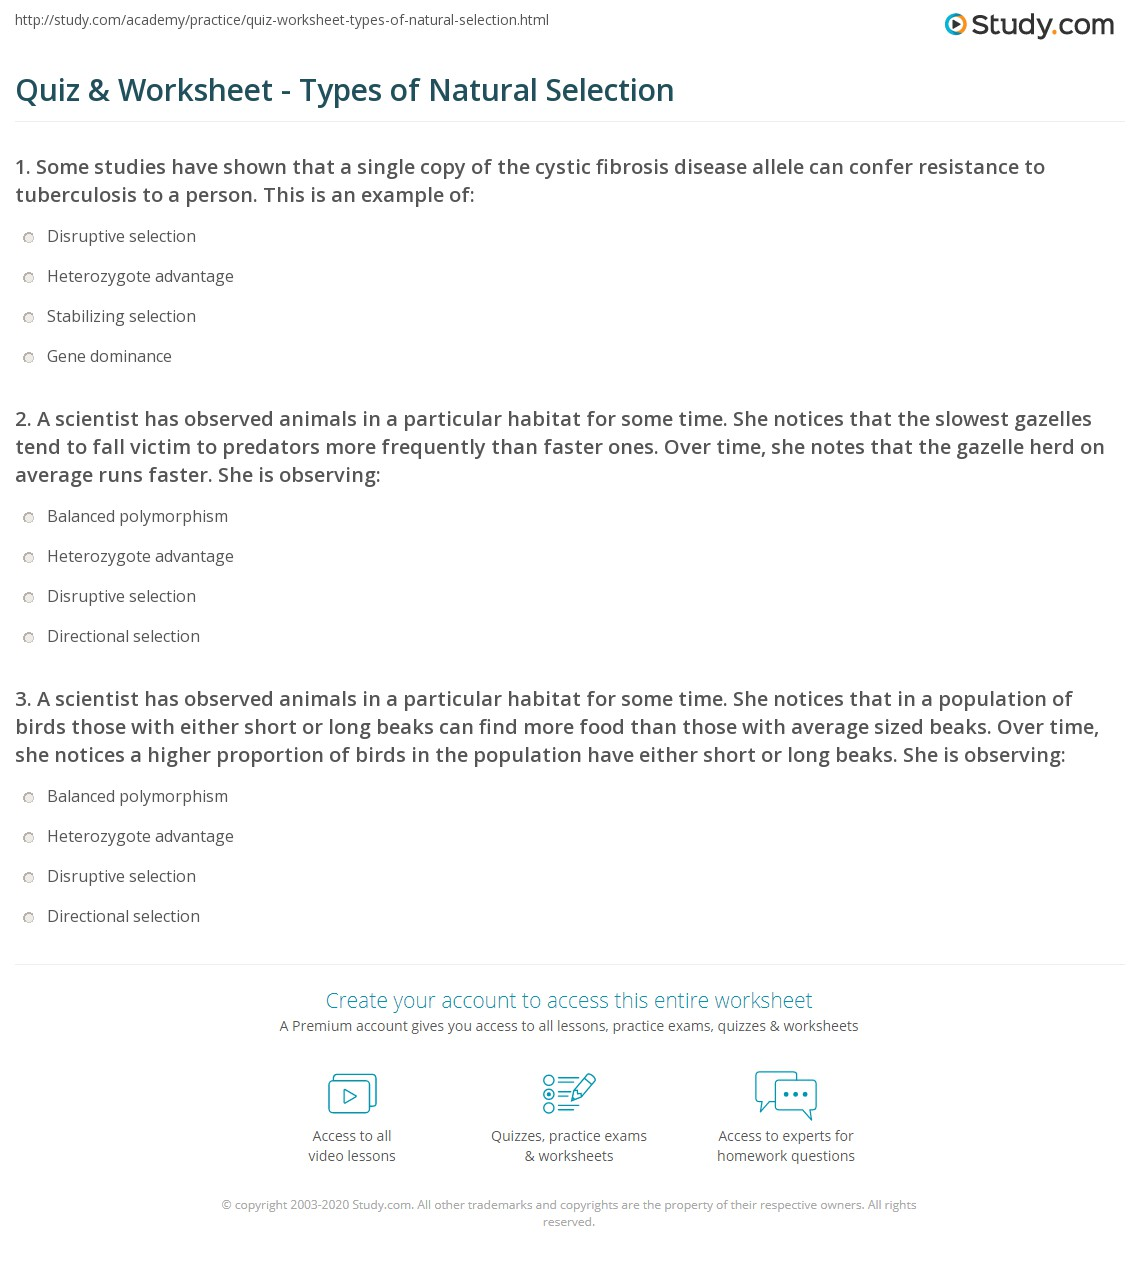 Natural Selection Types Worksheet